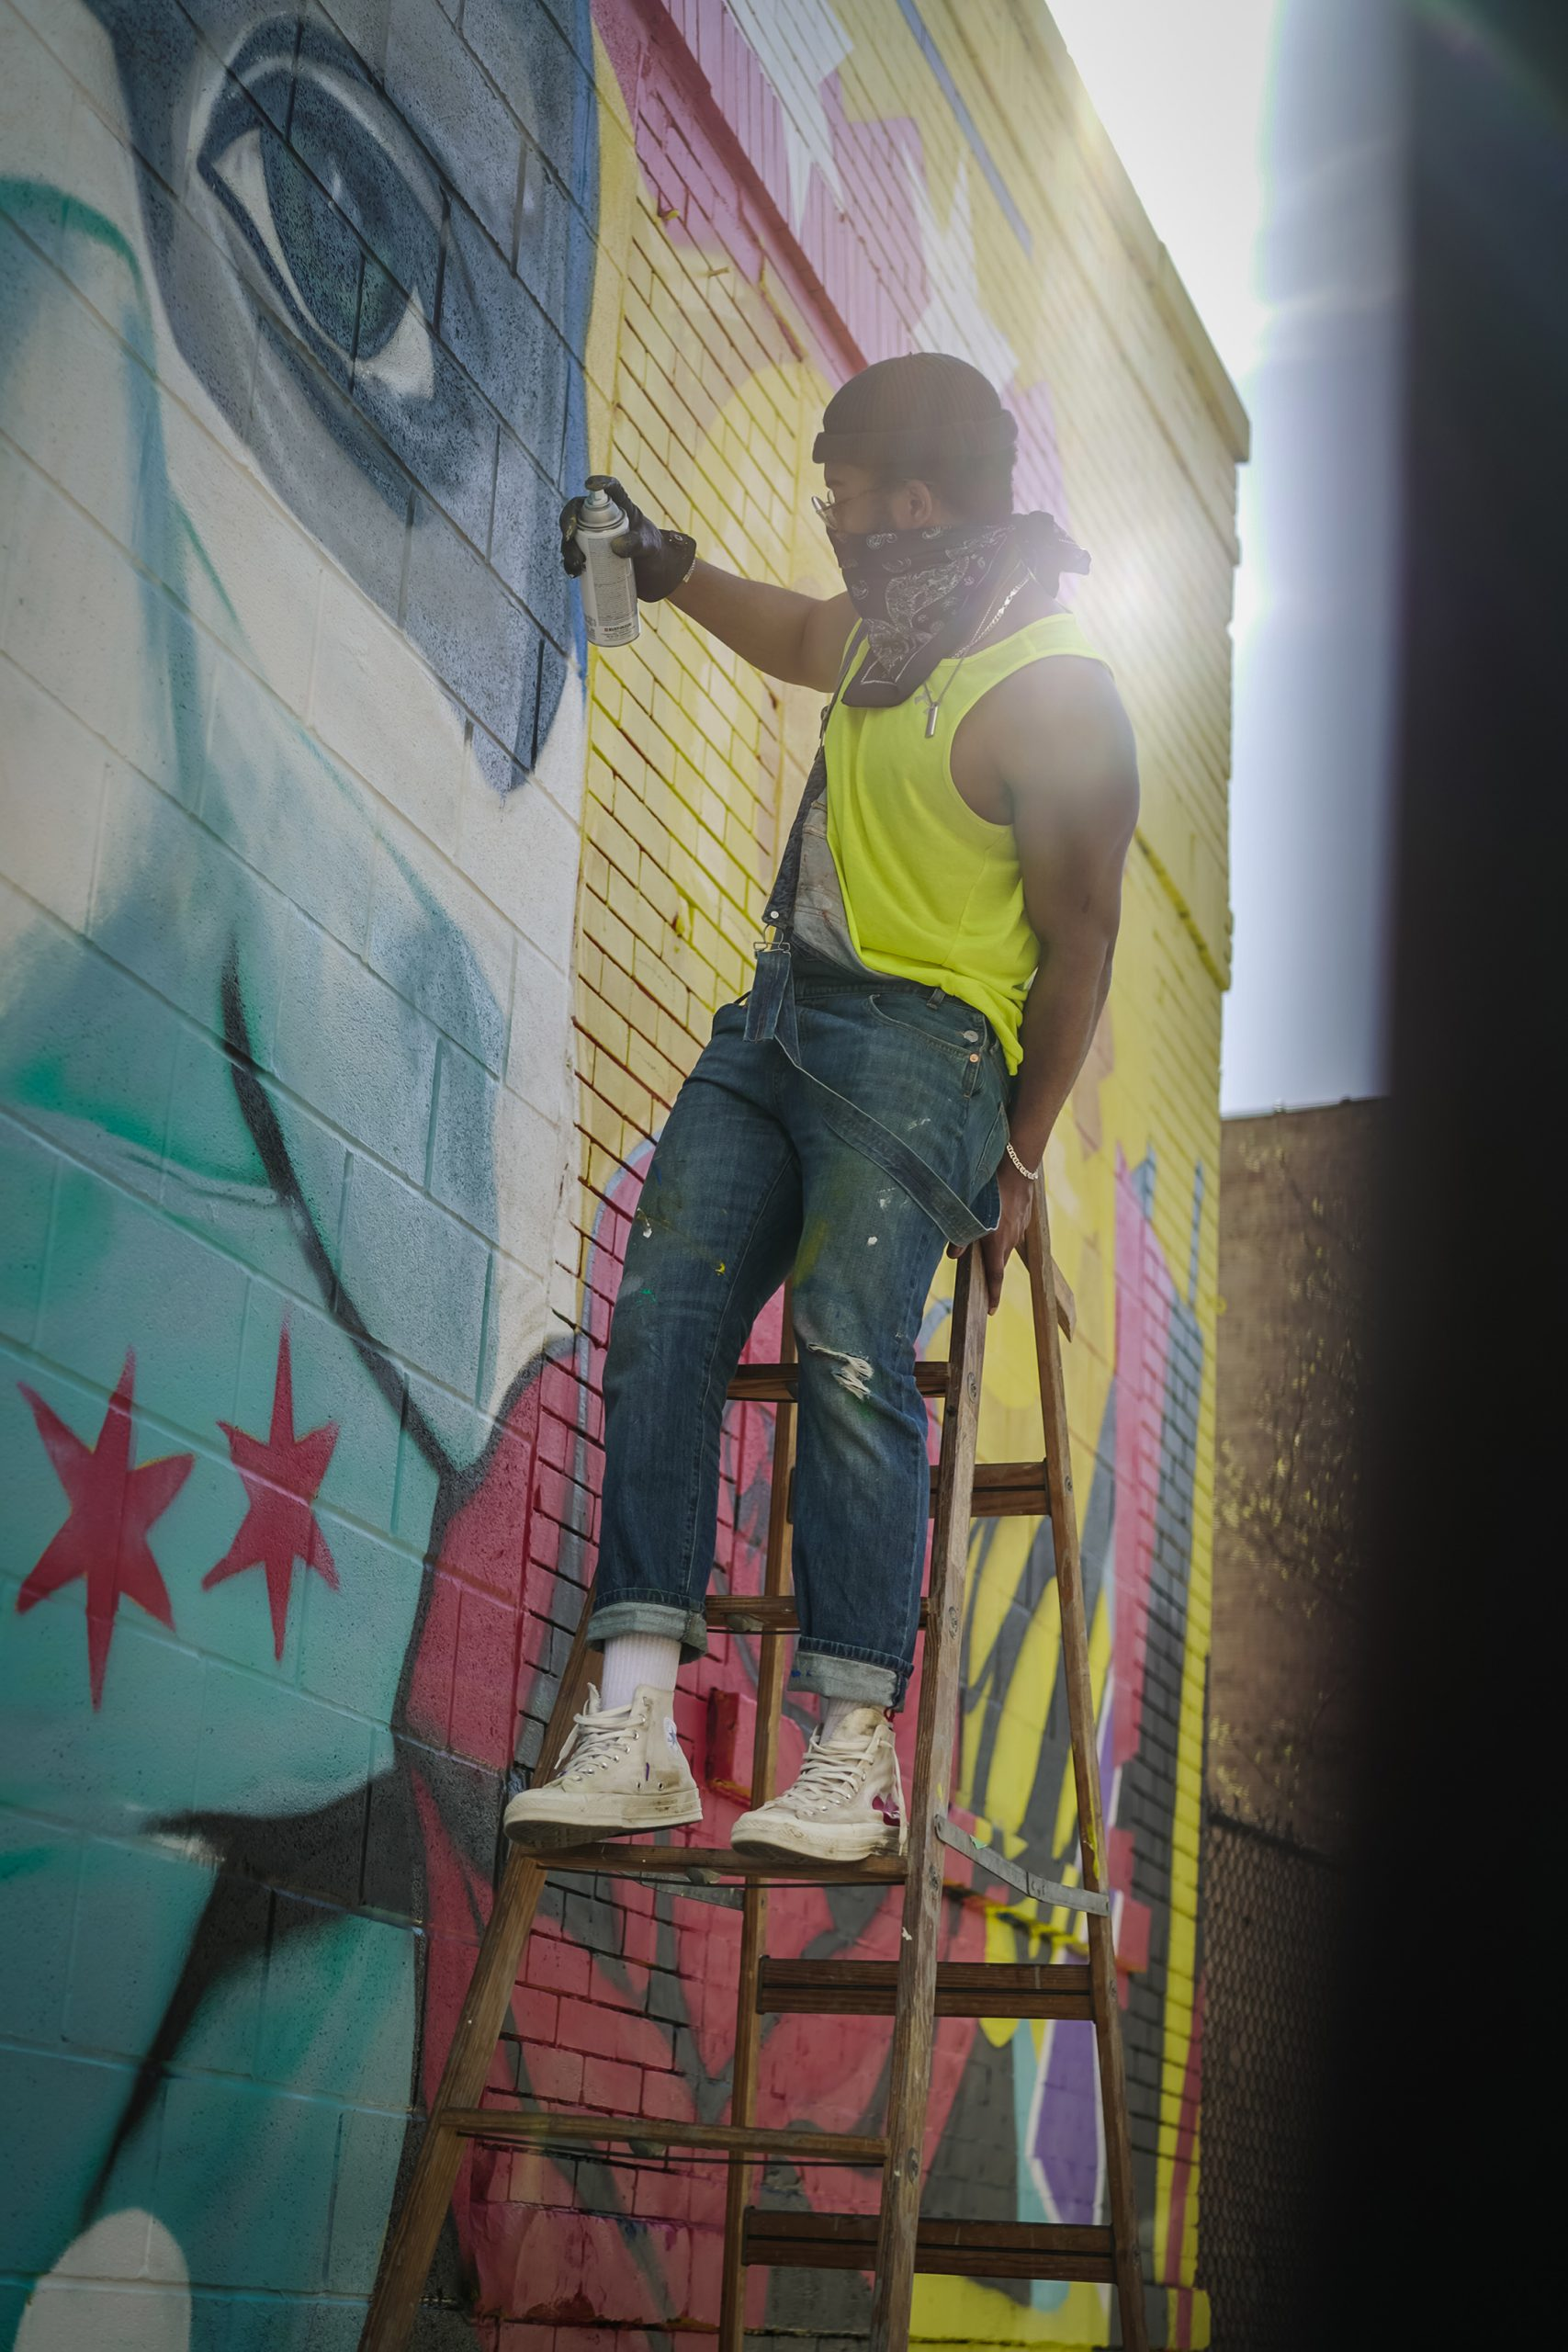 Murals For Medical Relief Mural in Chicago by Dwight White II